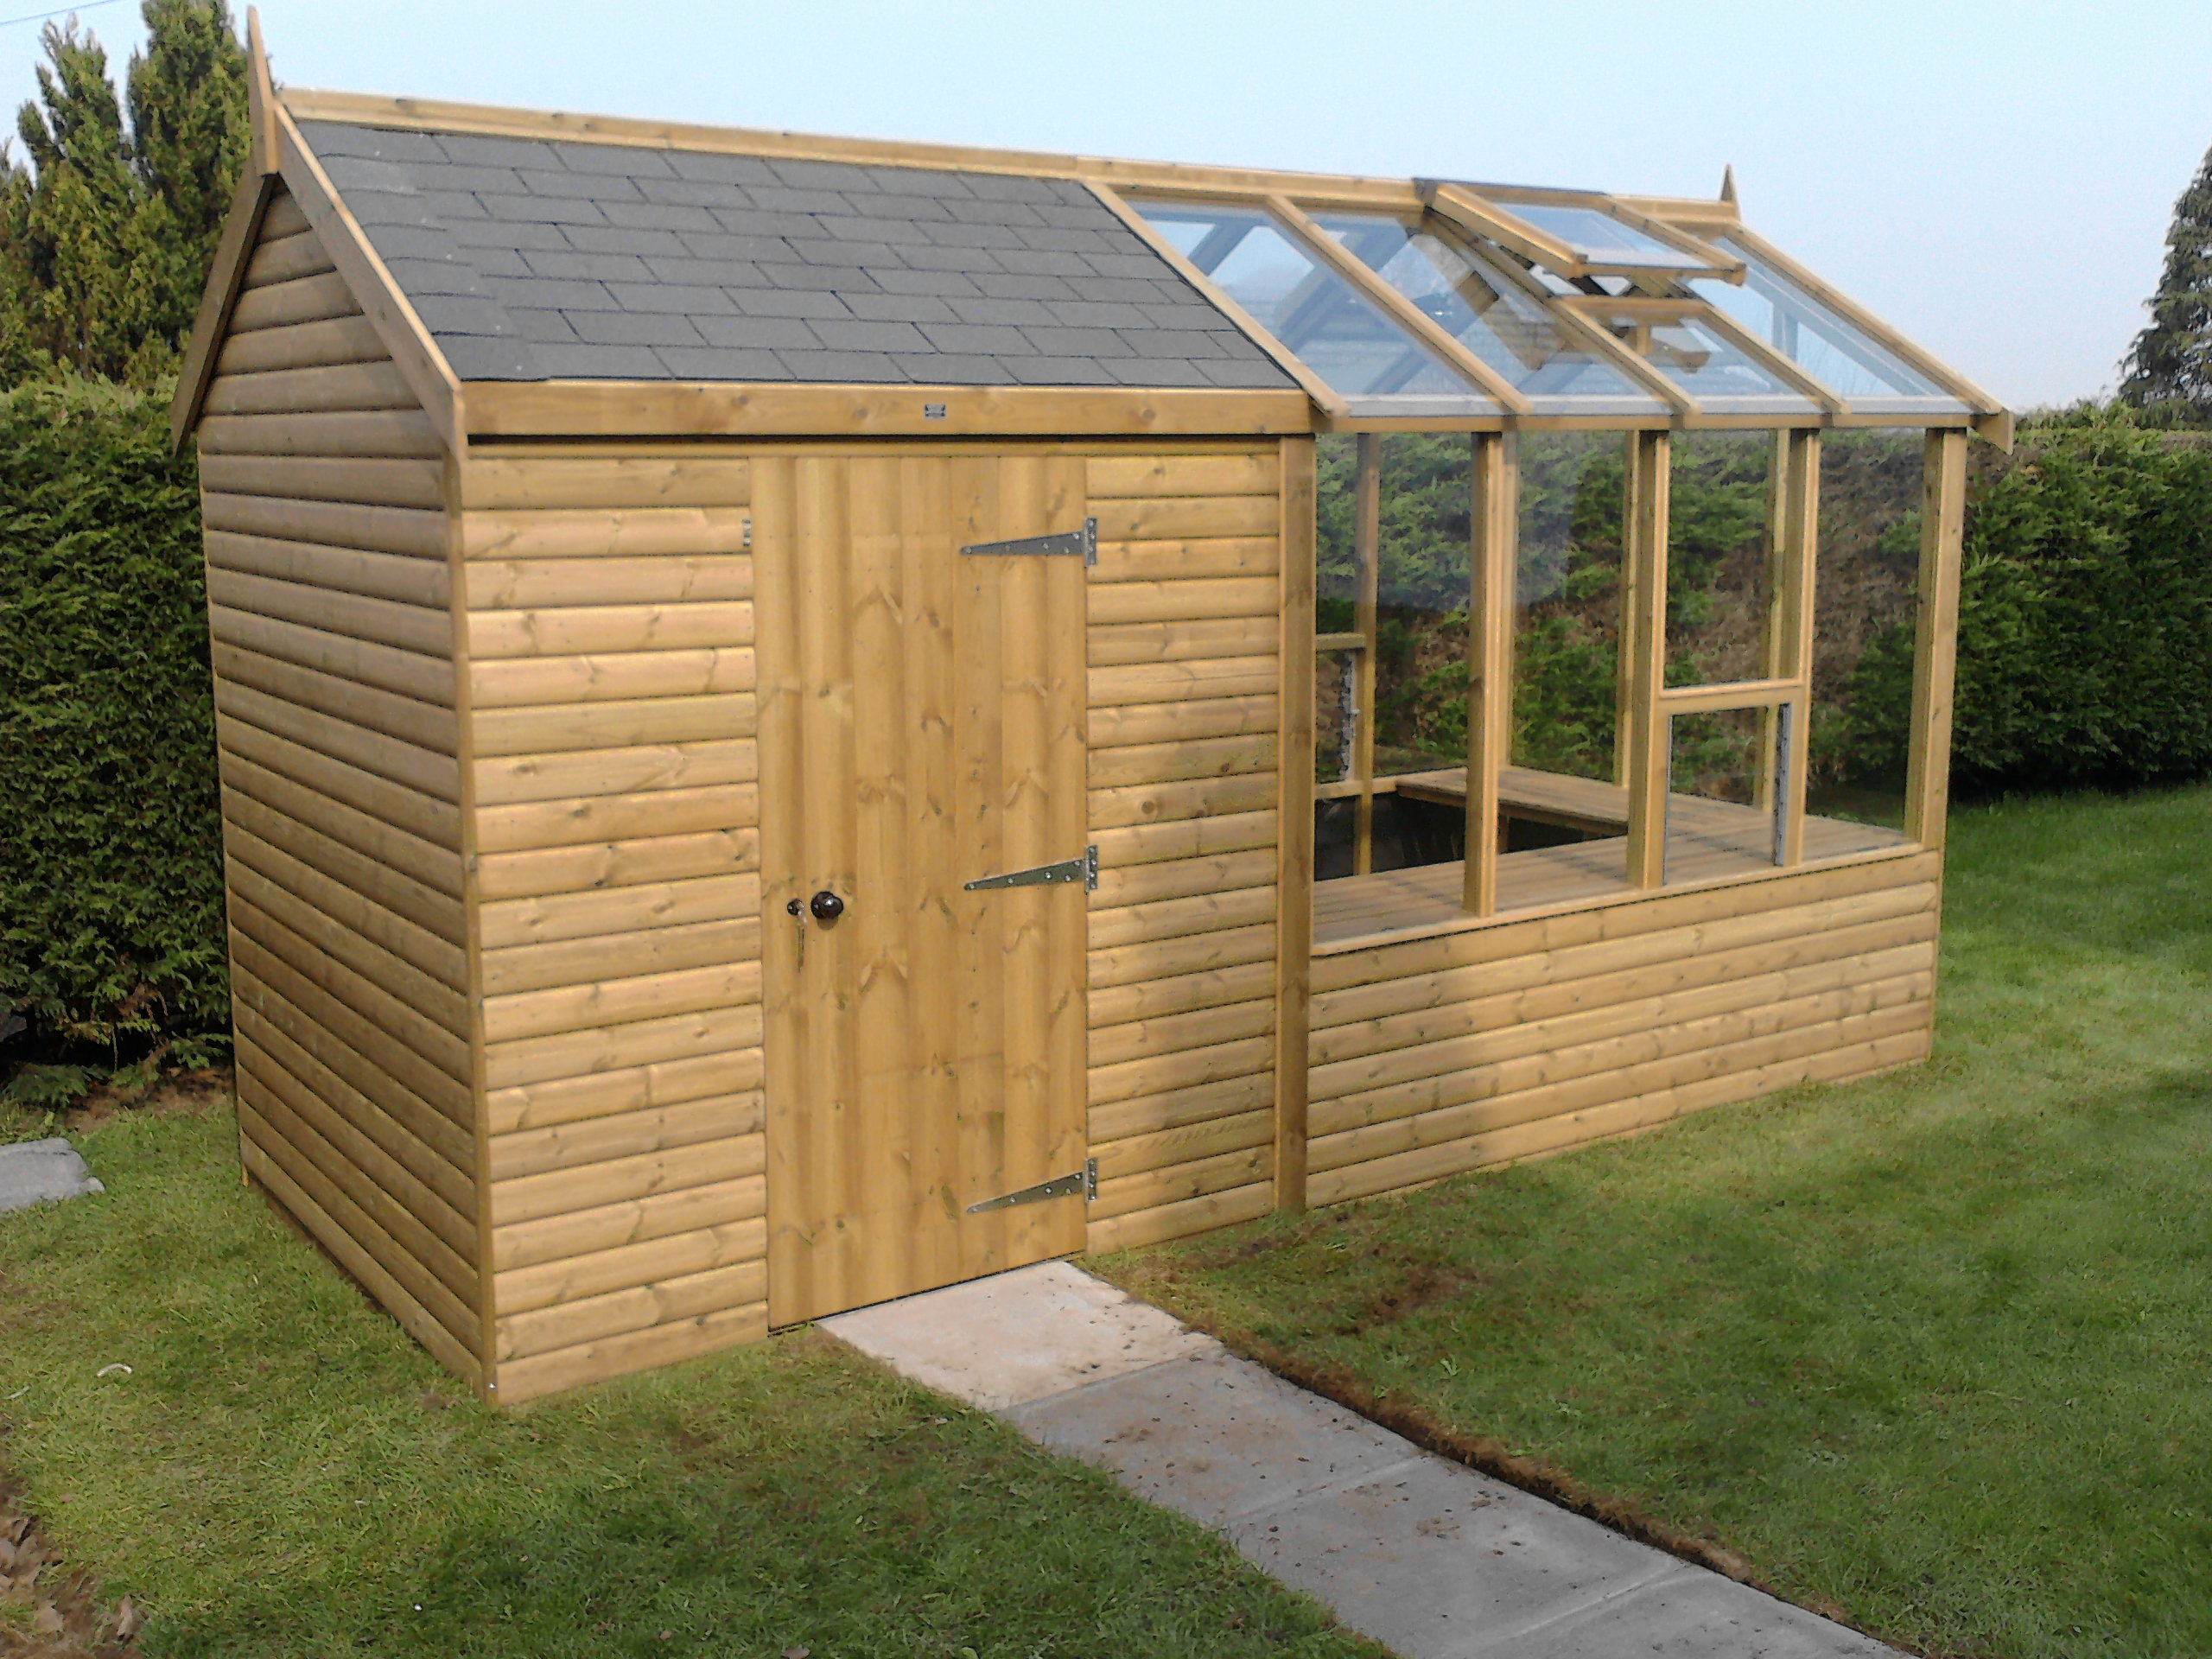 Vinyl garden sheds for sale, shed company cornwall, garden shed ...